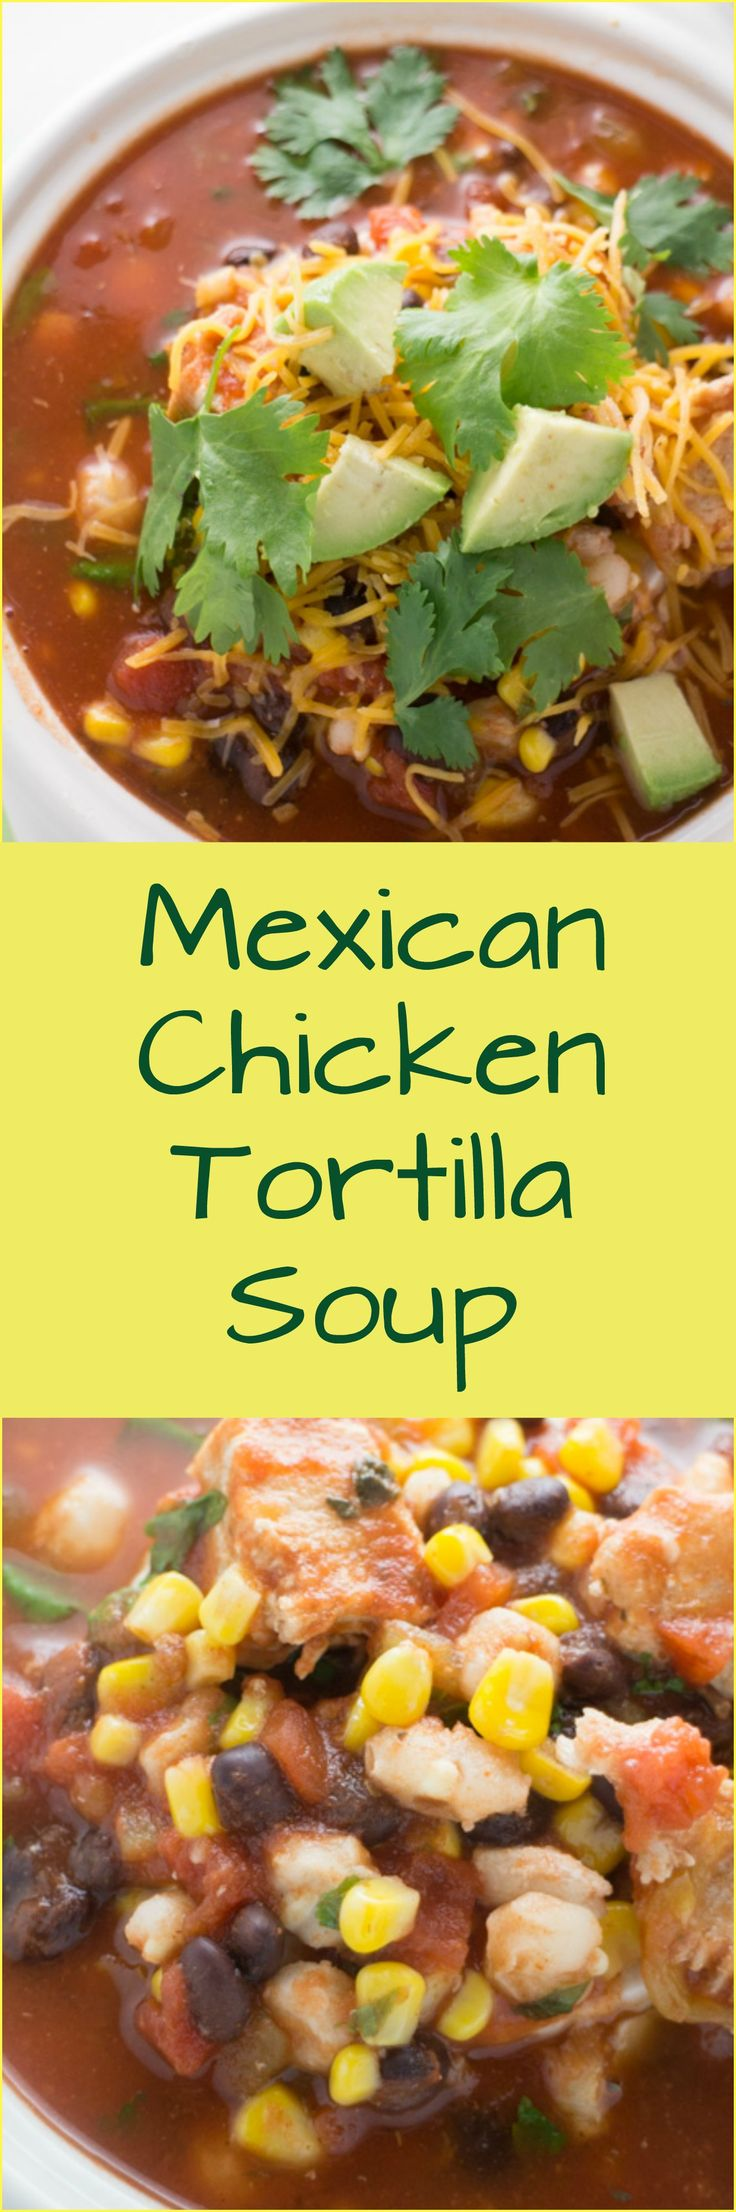 Mexican Chicken Tortilla Soup Recipe. A authentic tortilla soup recipe made with chicken, crushed tomatoes, hominy, black beans, corn…